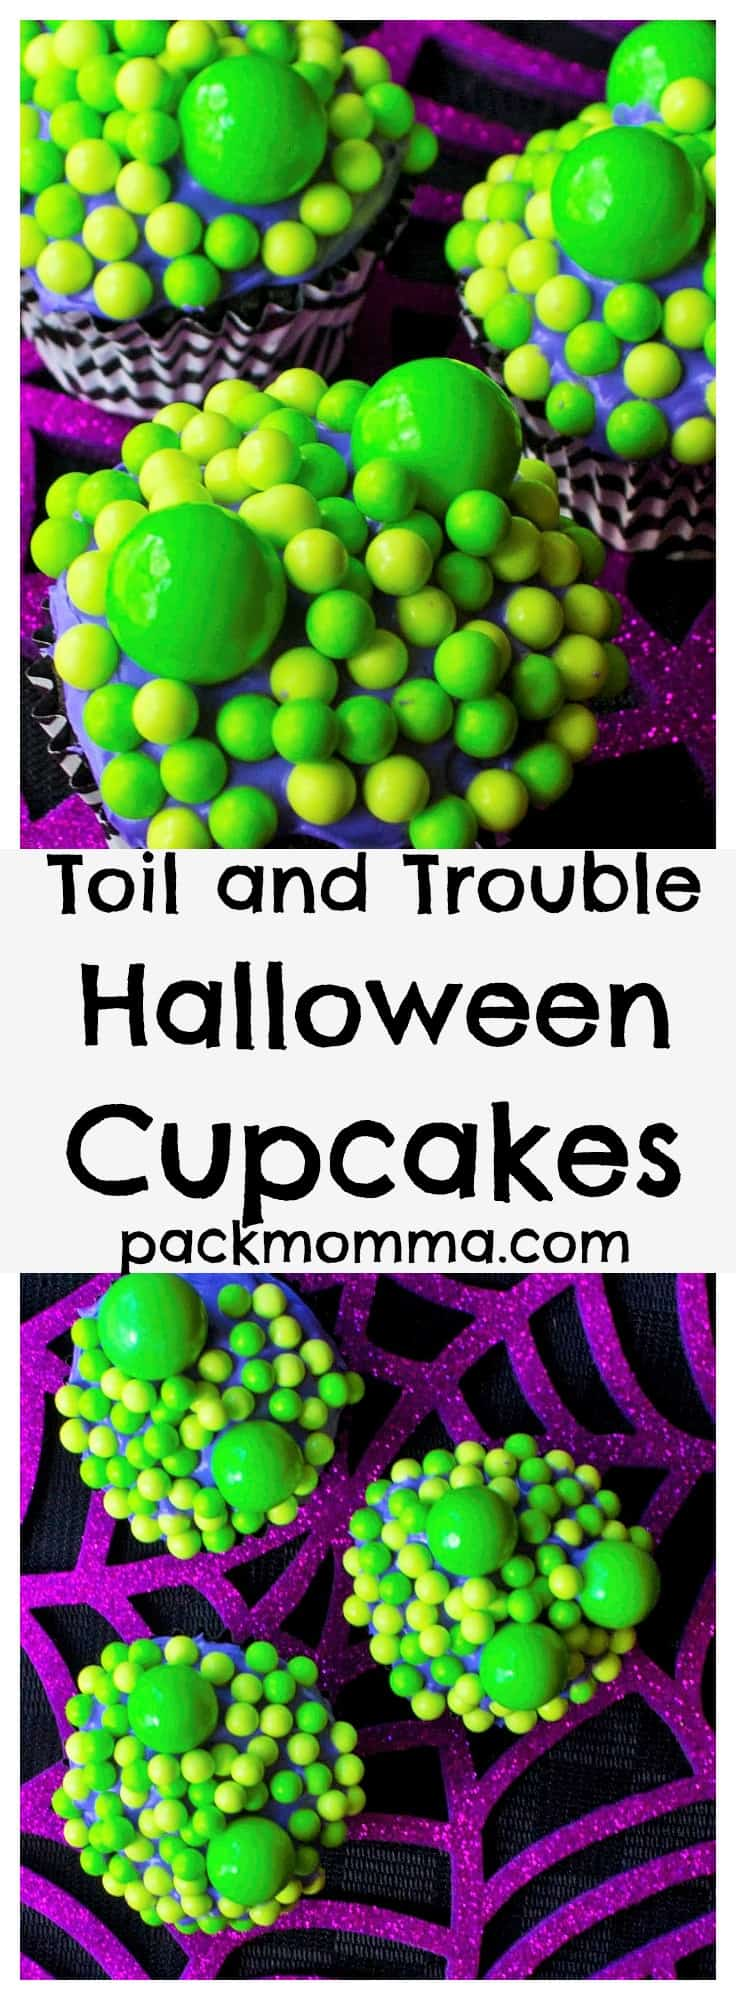 Toil and Trouble Halloween Cupcakes | Celebrate the Halloween season with these festive and fun Toil and Trouble Halloween Cupcakes. Perfect delicious fun for all ages!| Pack Momma | https://www.packmomma.com